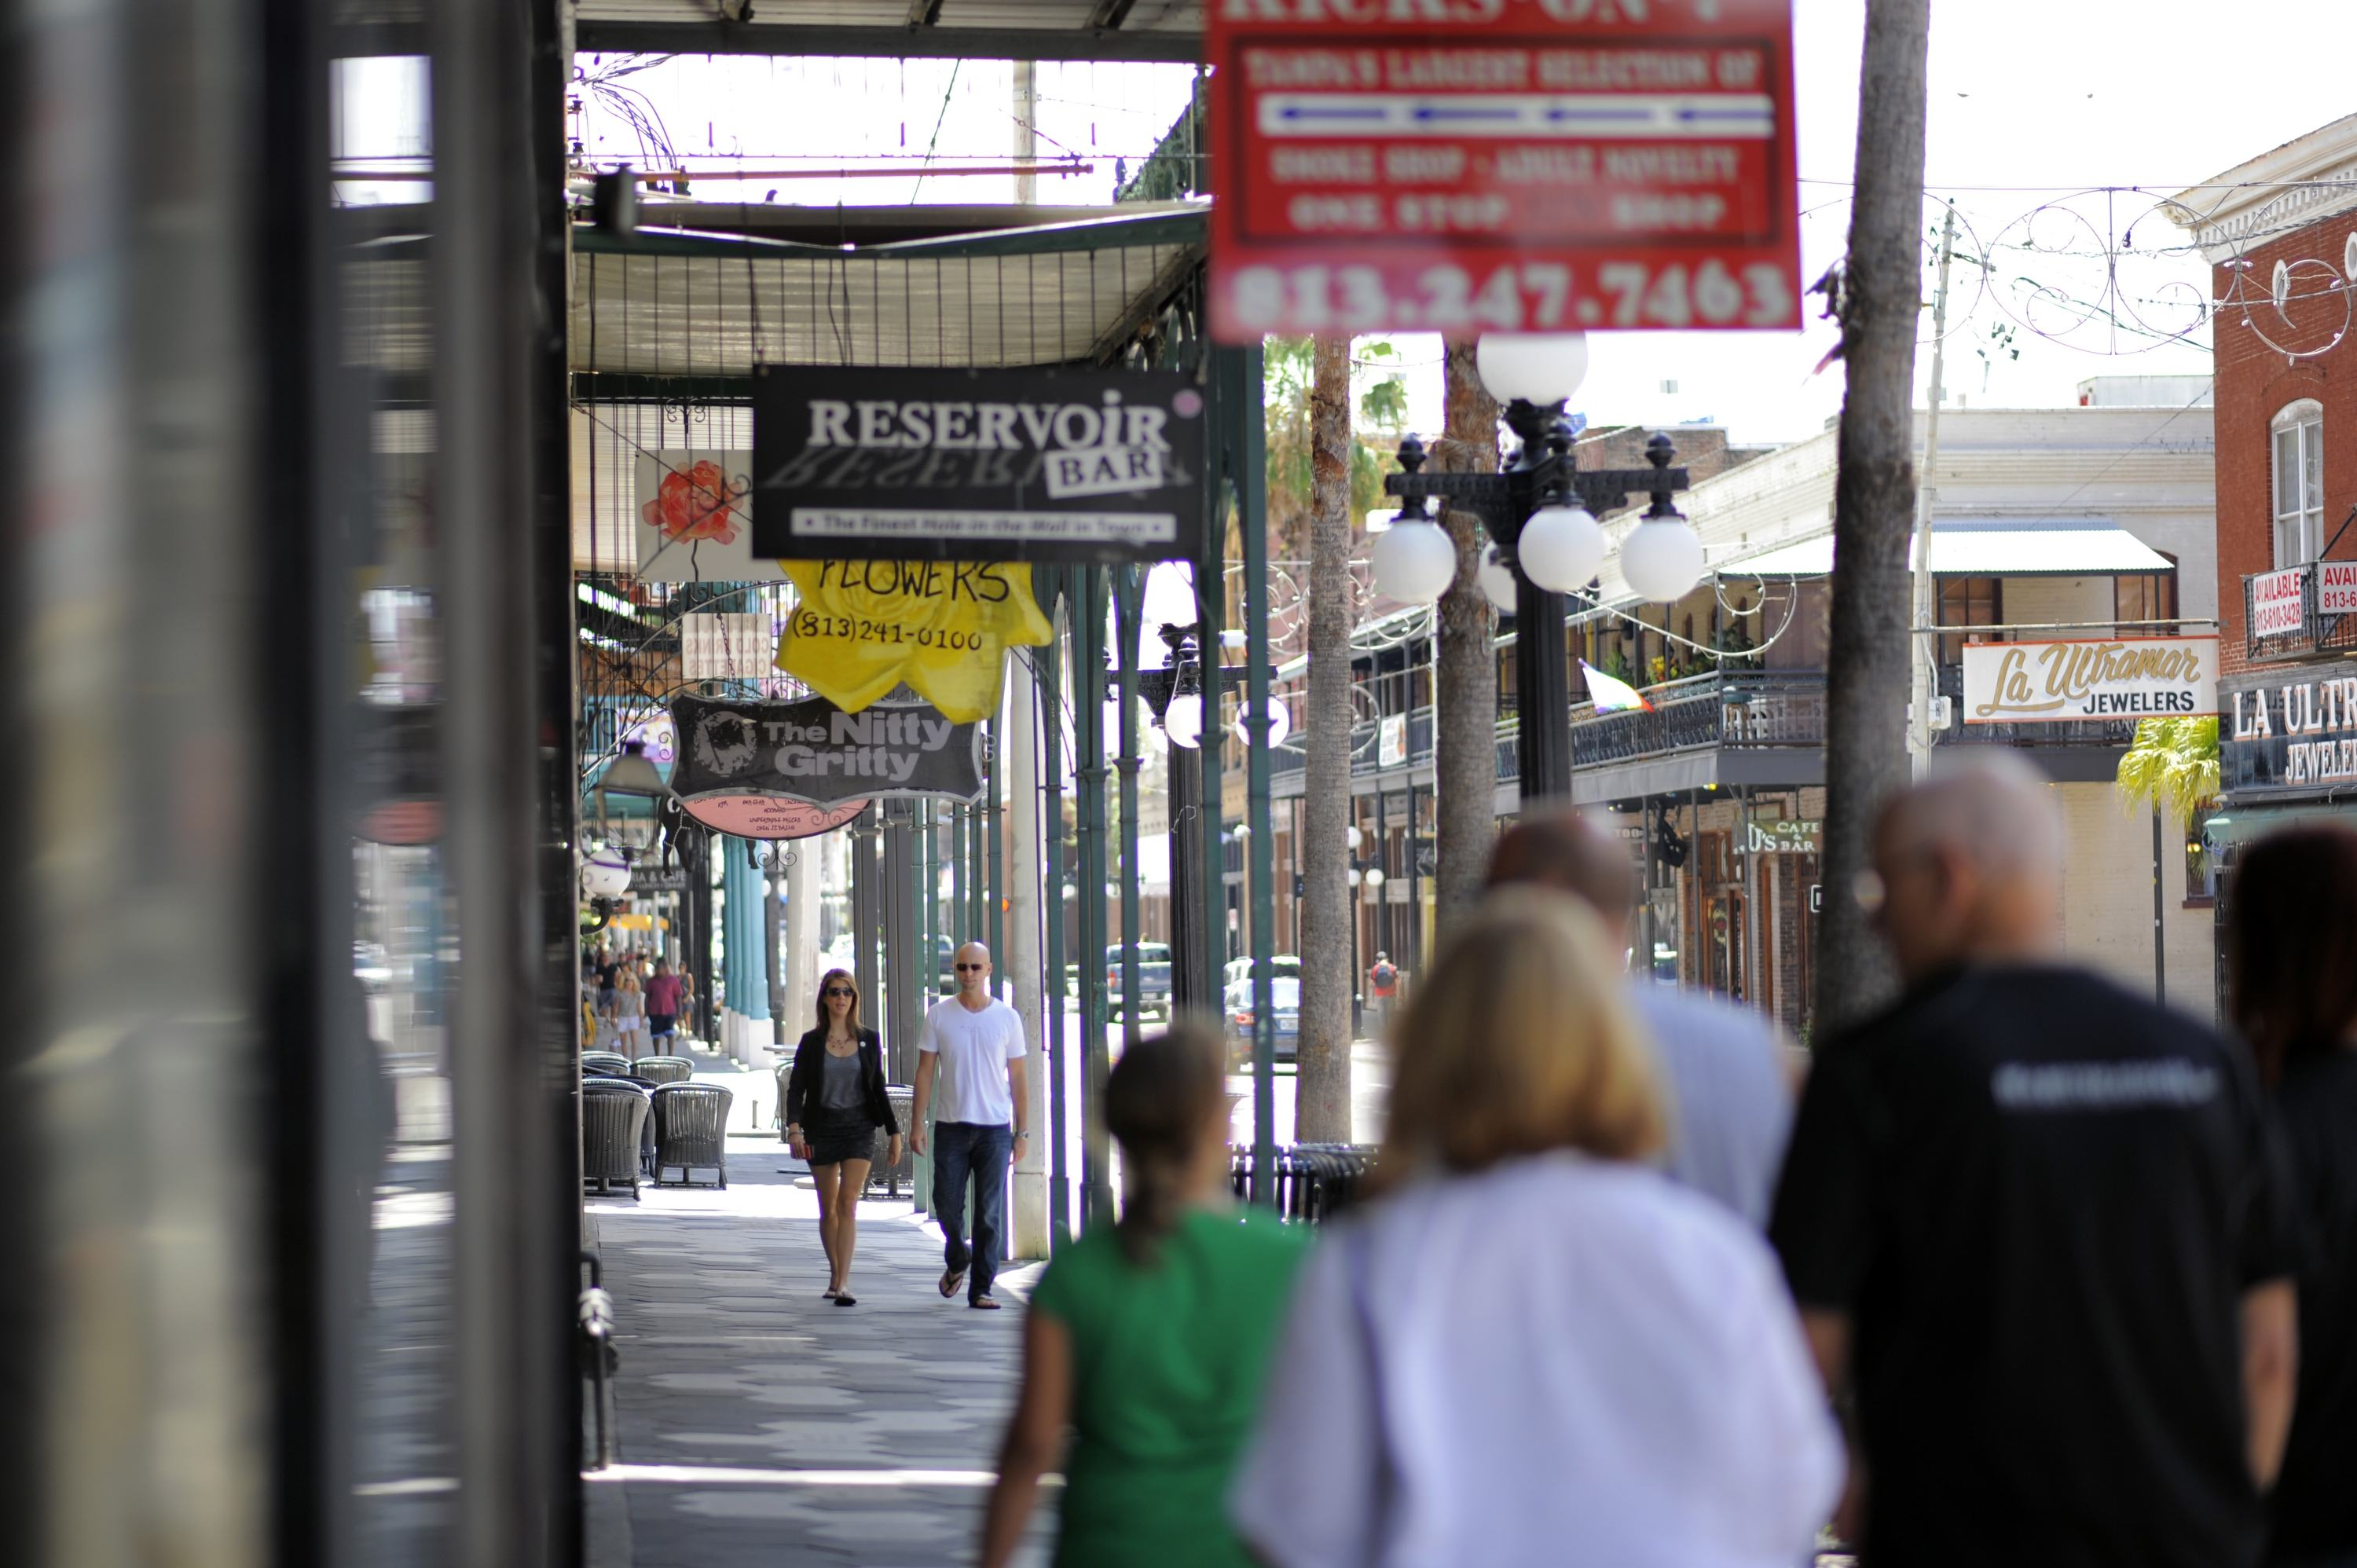 A view down Seventh Avenue in the Ybor City neighborhood of Tampa, Fla.  (Brian Blanco/Reuters)